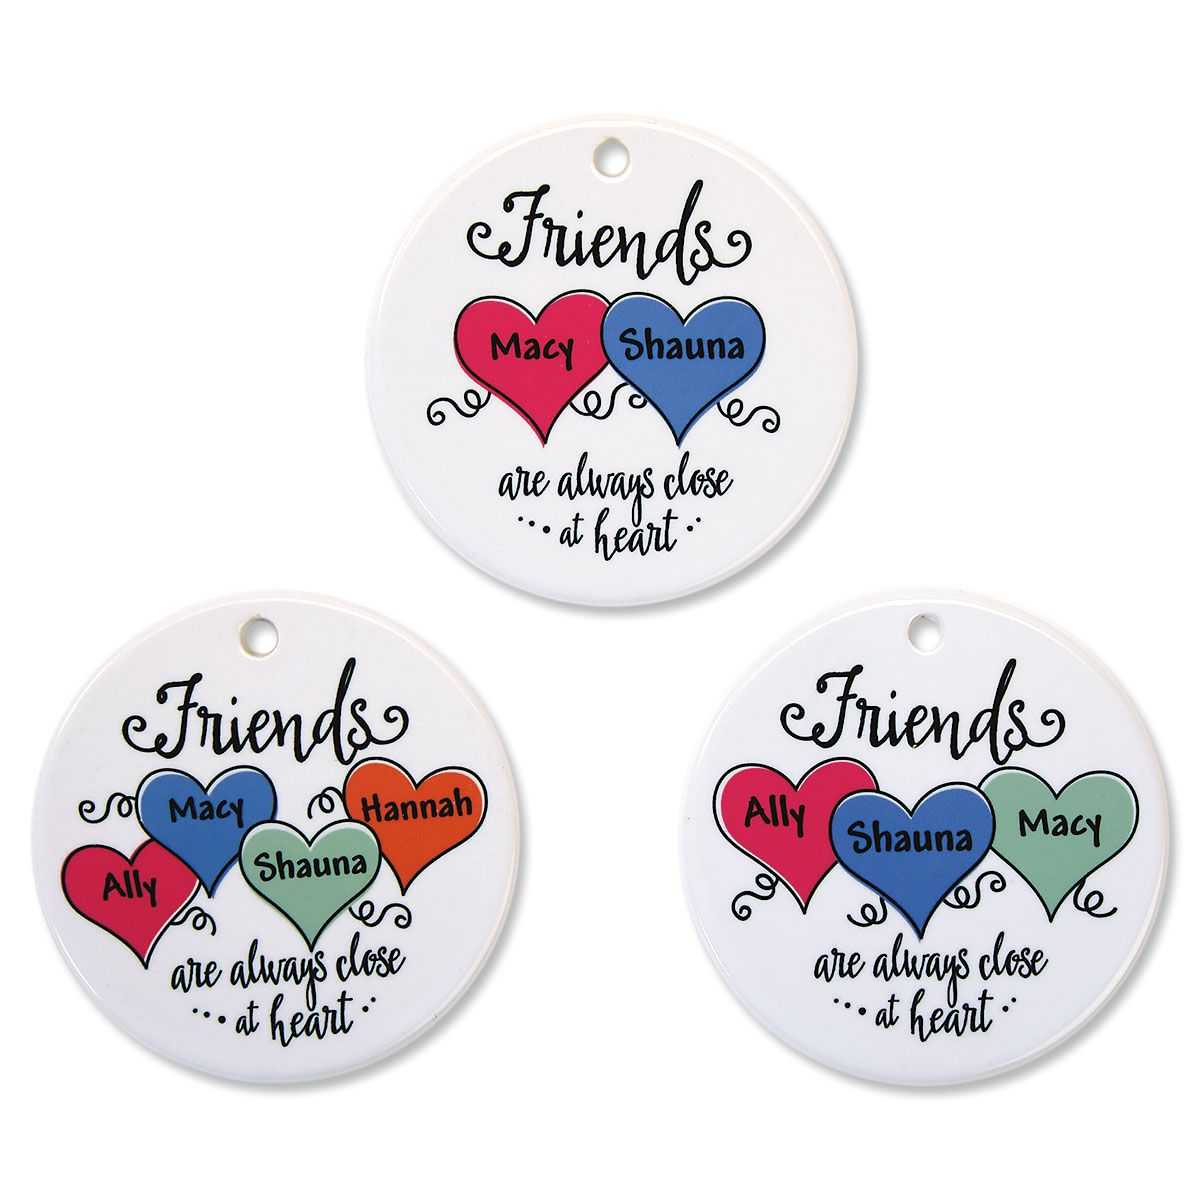 Friends Close At Heart Personalized Porcelain Ornament